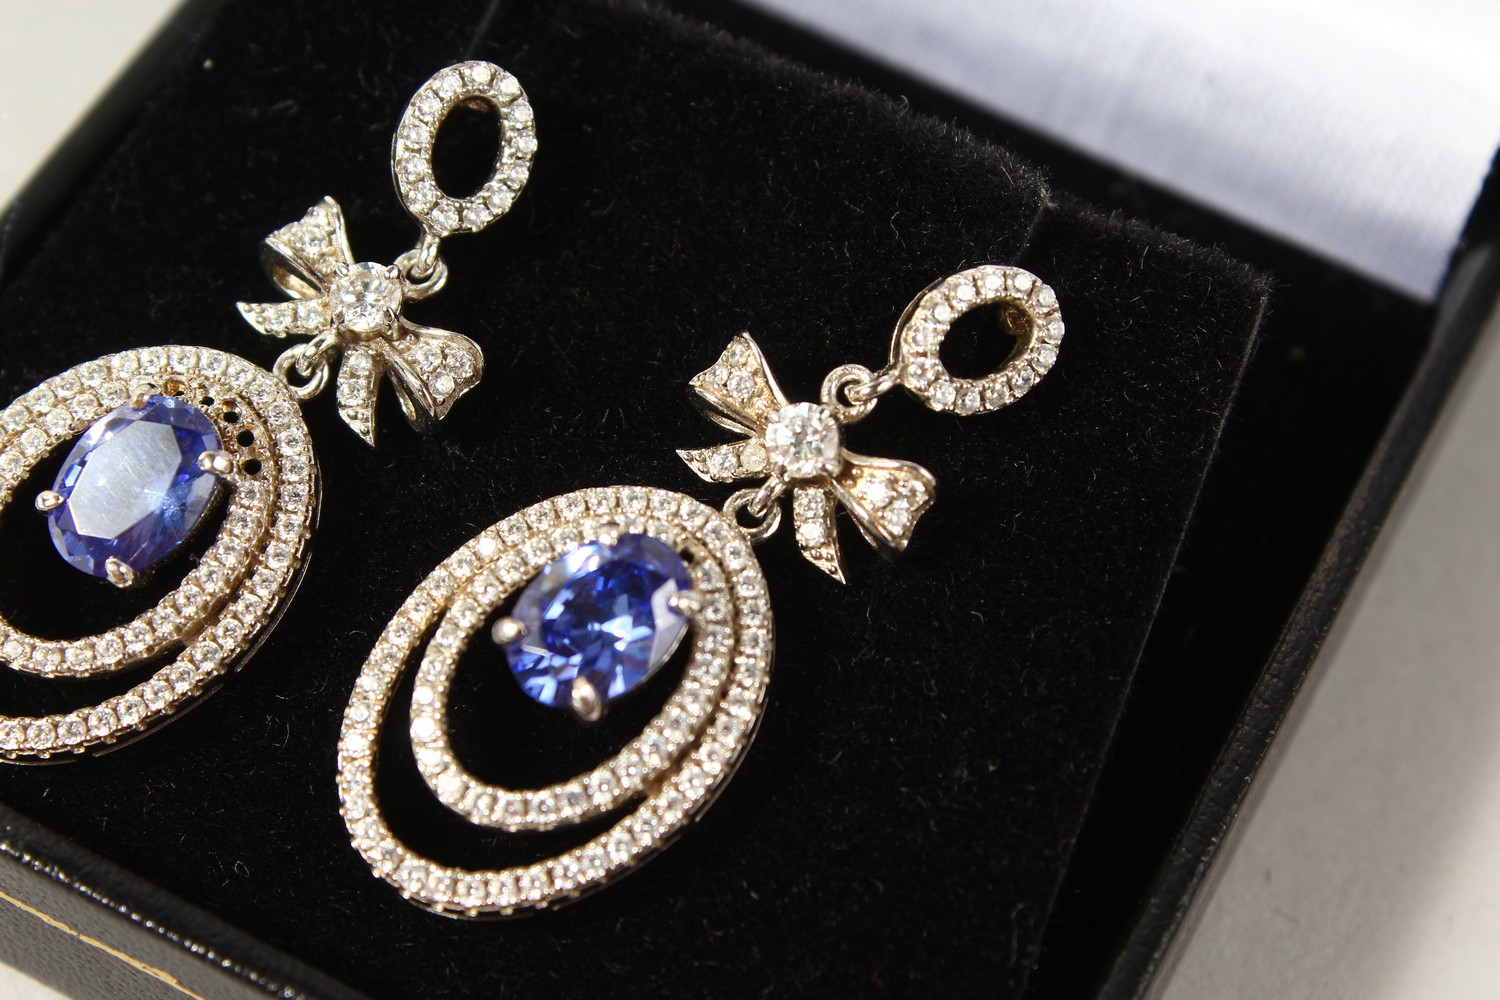 Lot 1753 - A PAIR OF ART DECO EARRINGS.